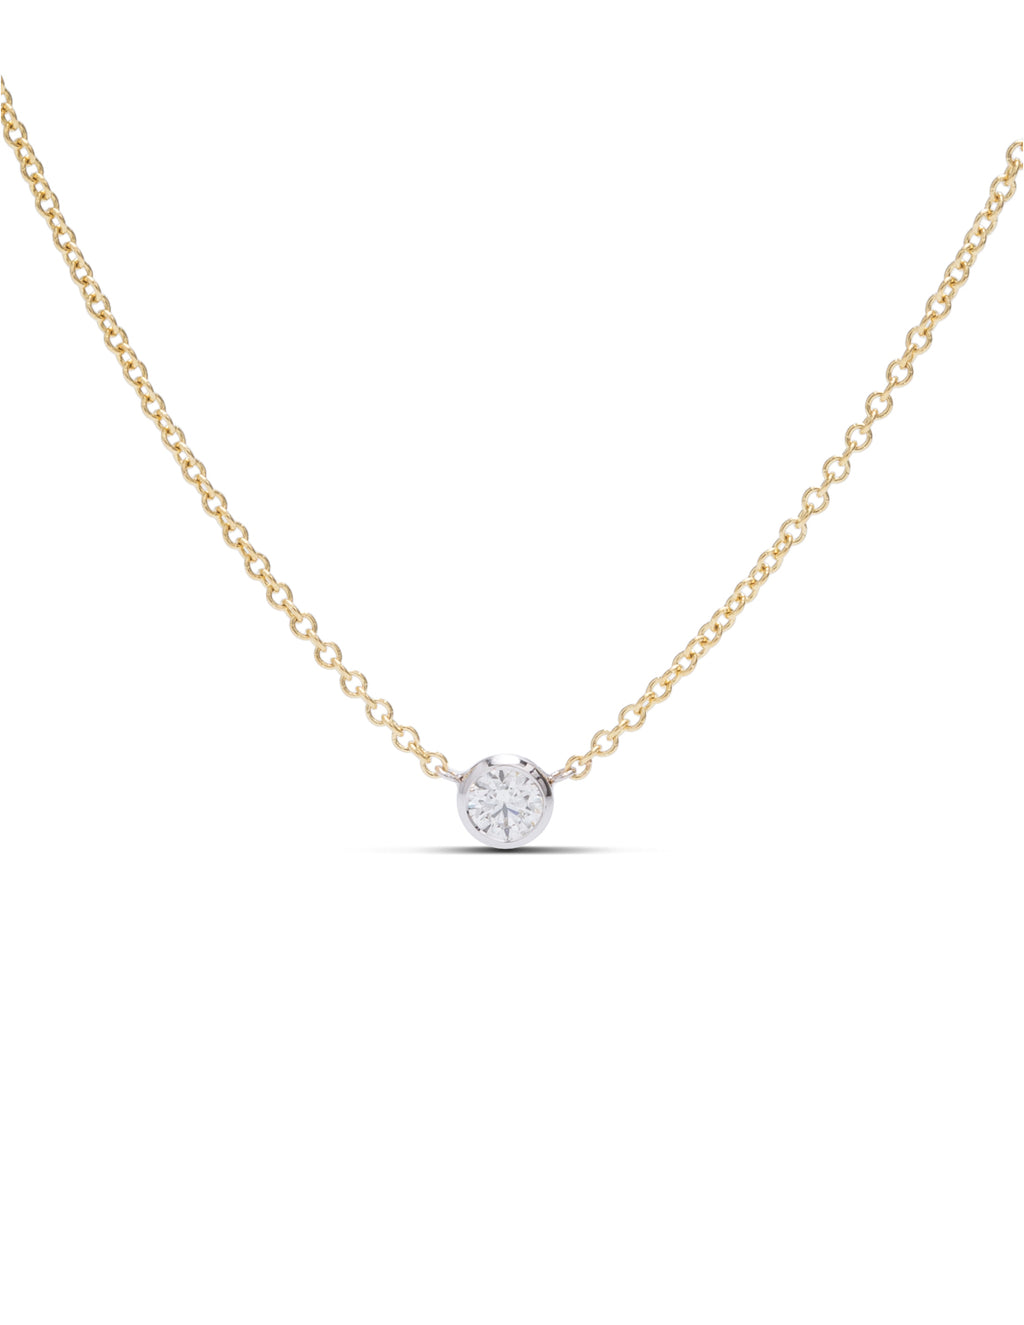 Delicate Bezel Set Diamond Solitaire Necklace - Charles Koll Jewellers